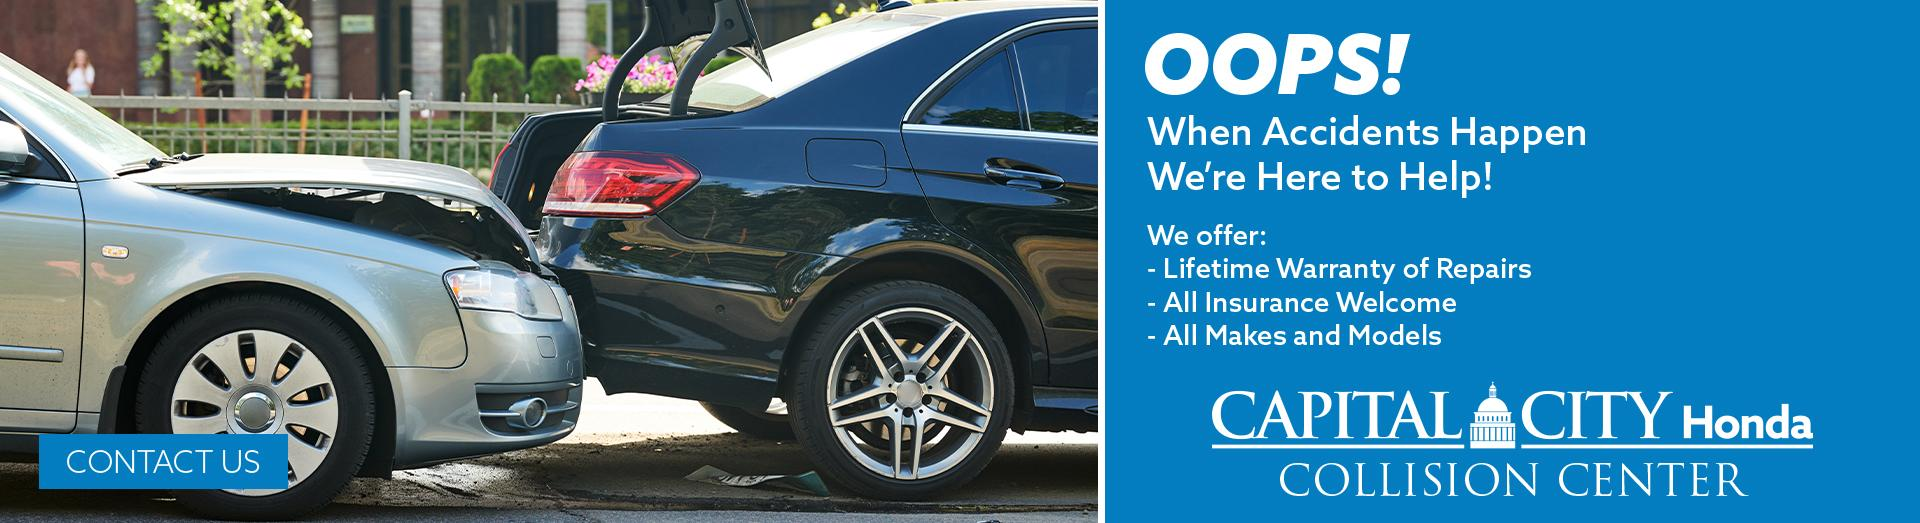 When Accidents Happen, We're Here to Help!